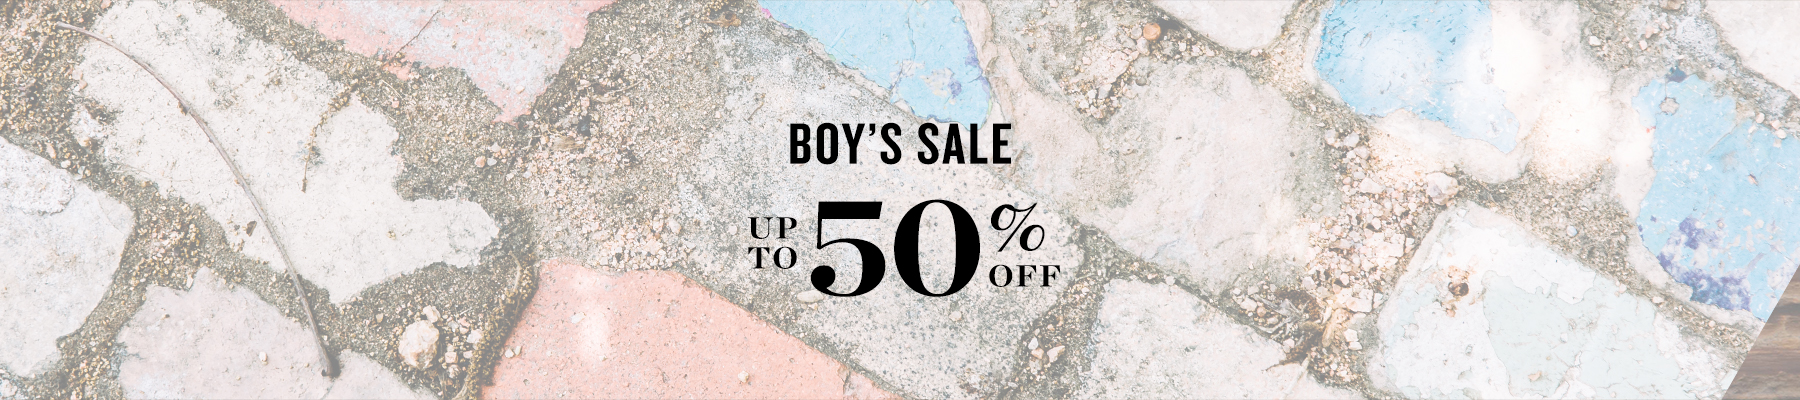 Boy's Sale up to 50% off